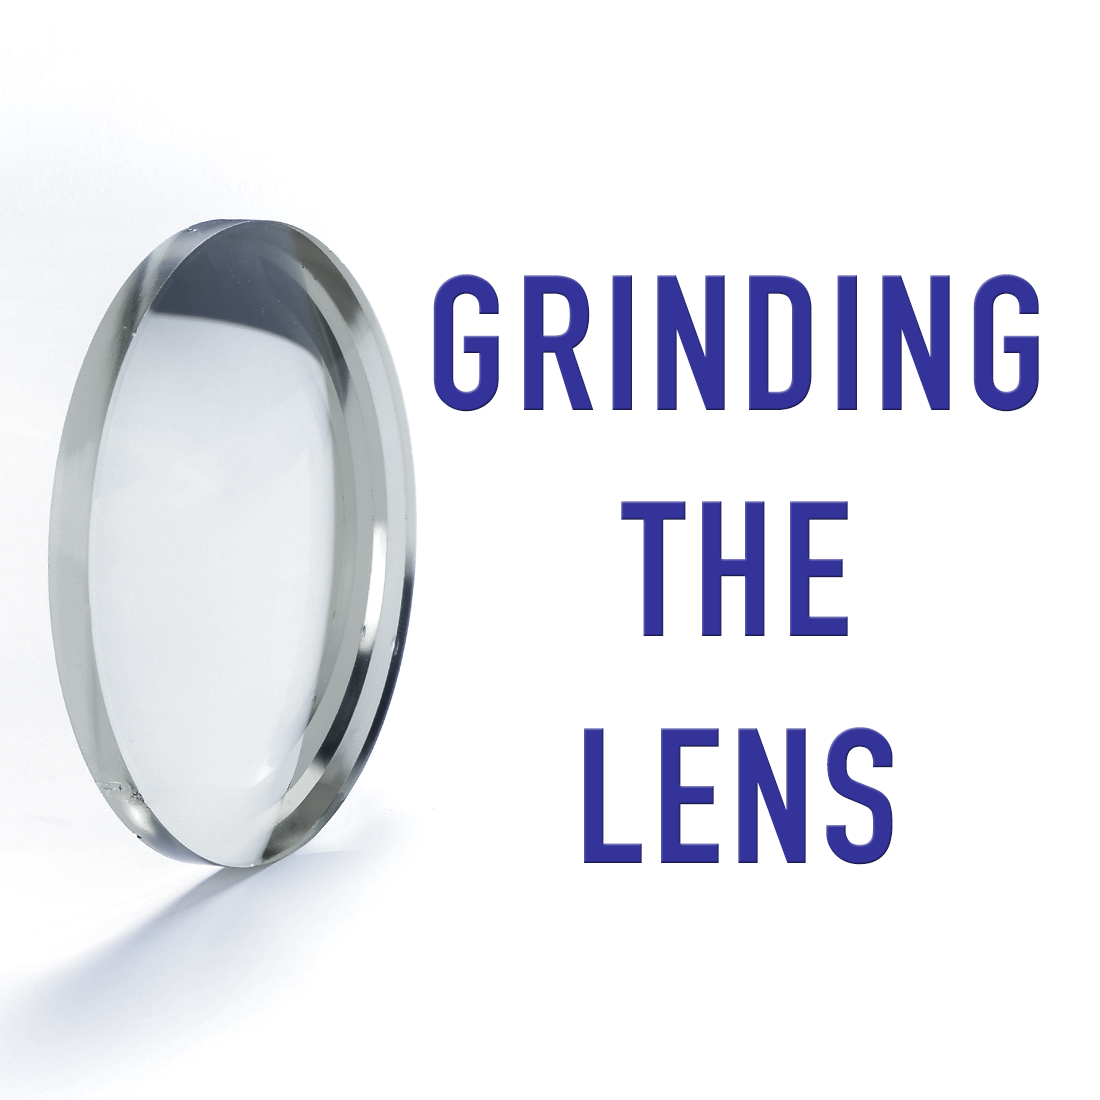 Grinding the Lens